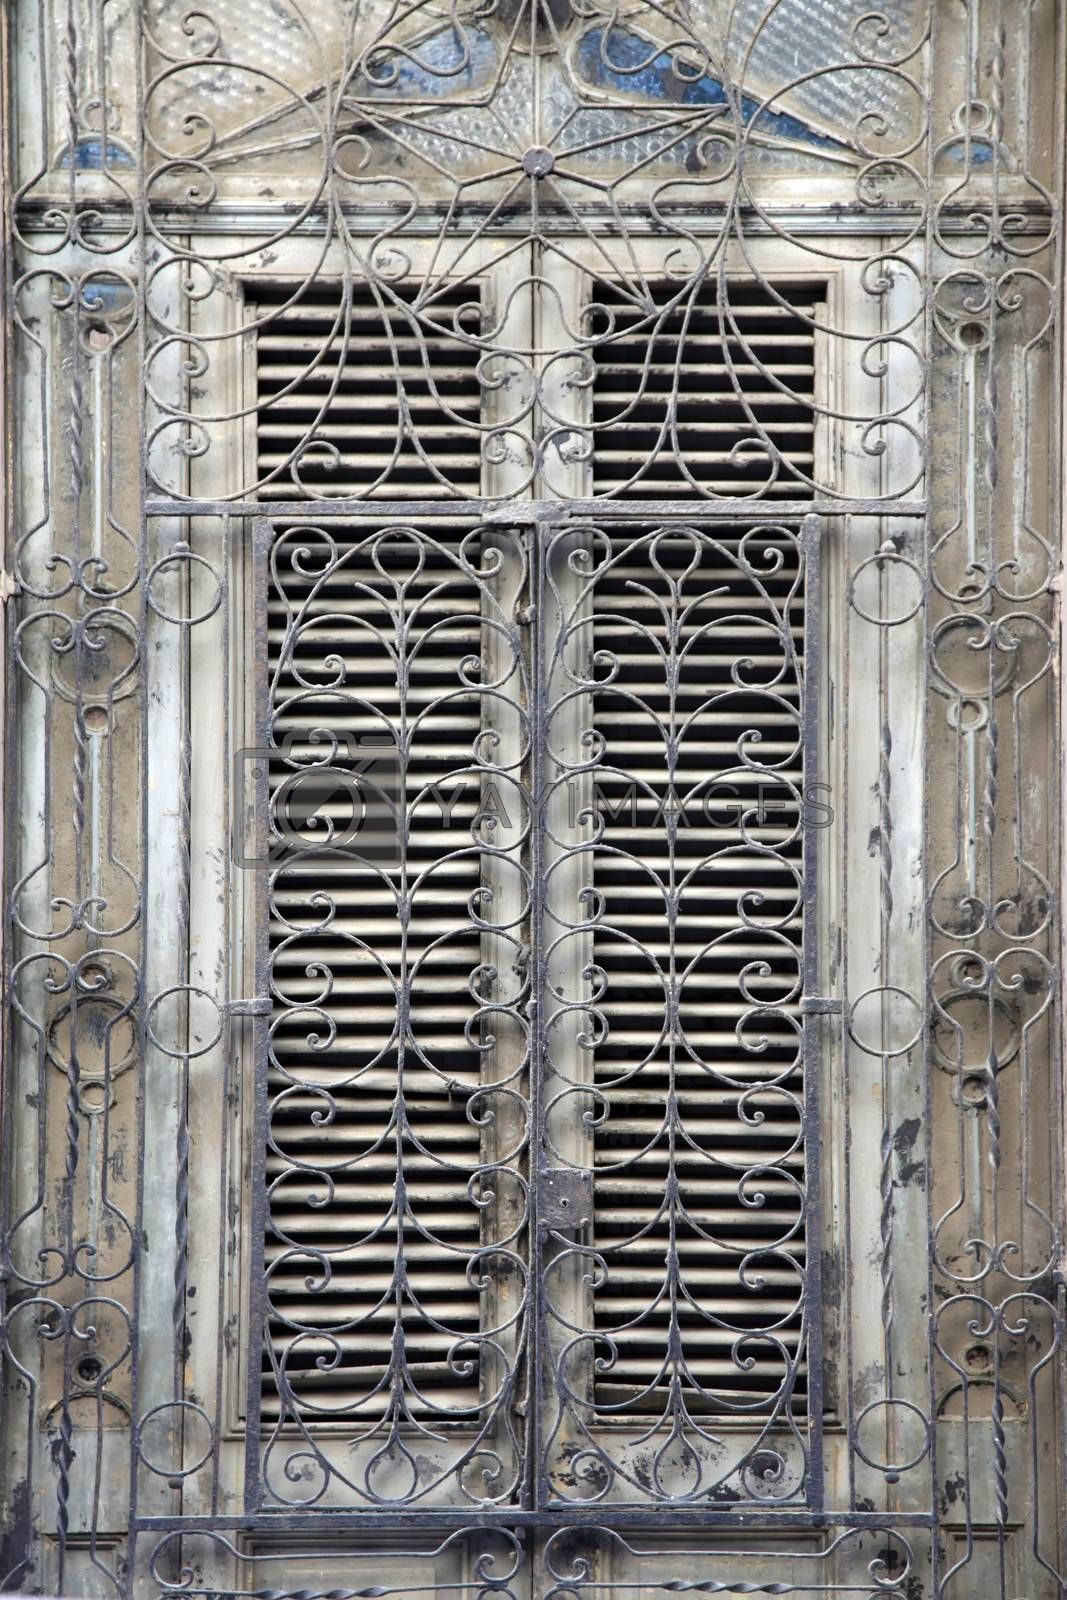 Wooden old window with iron bars